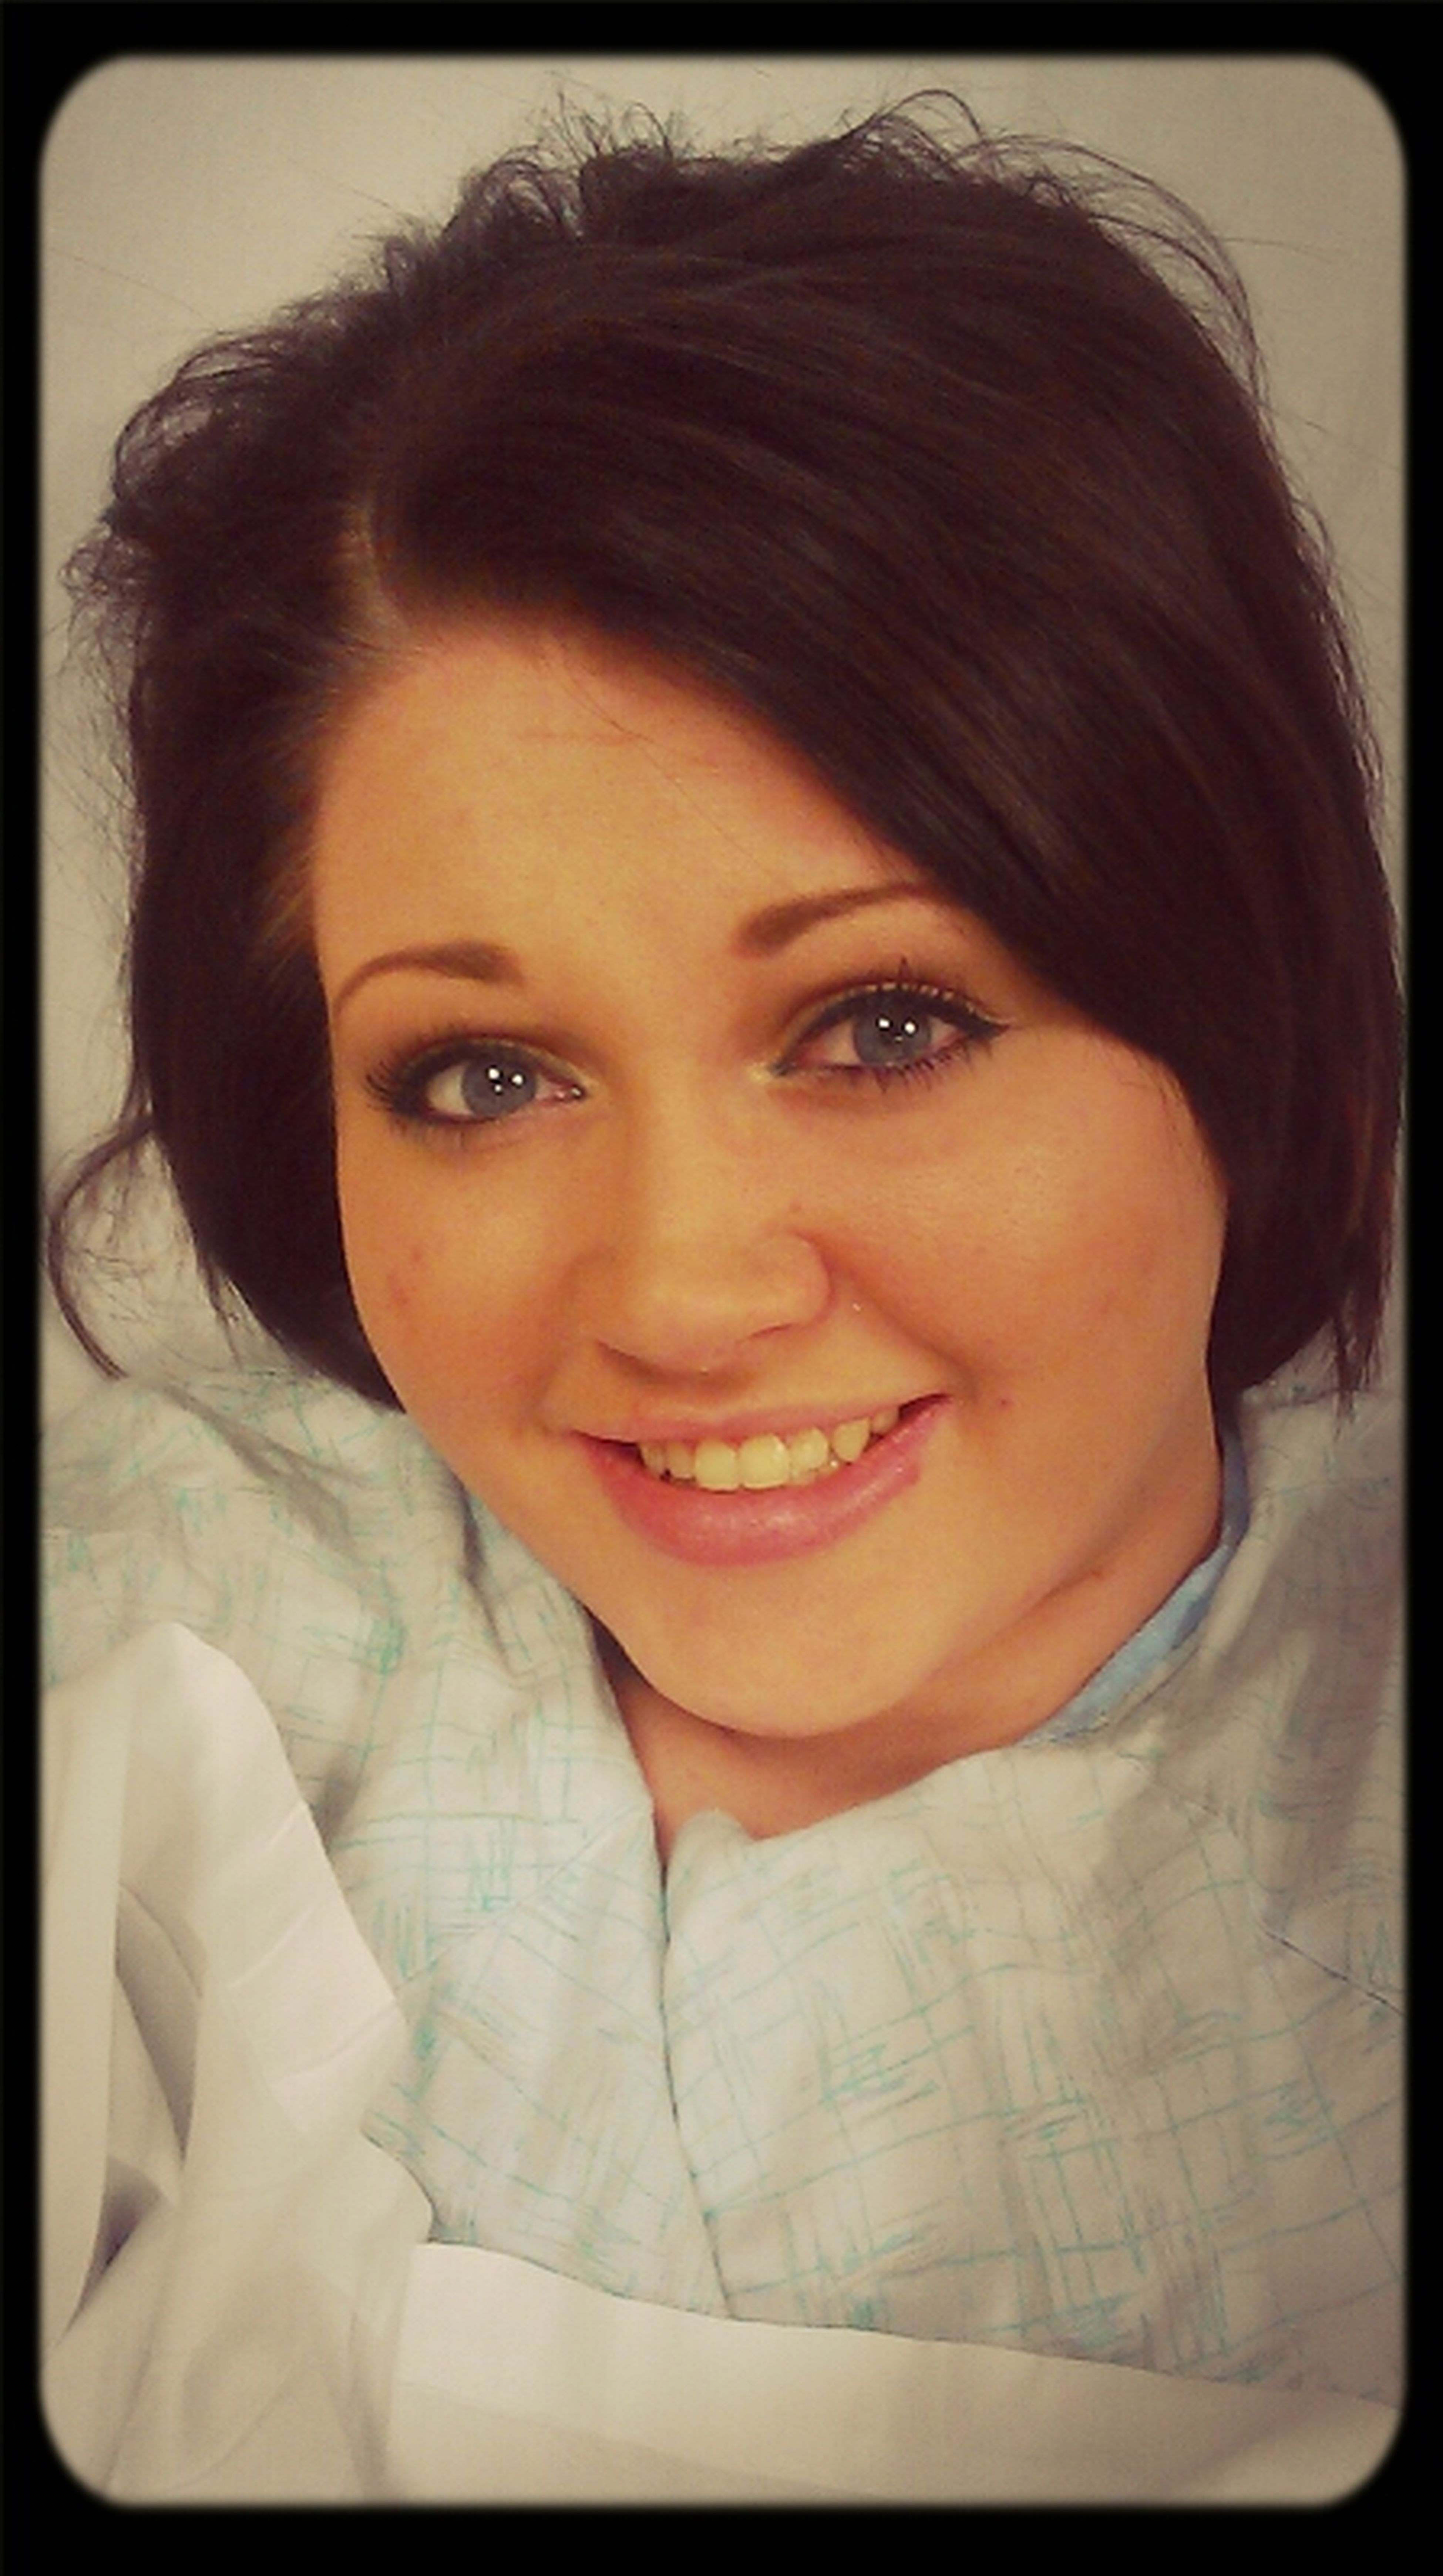 I'm pretty sure I'm the only girl who puts makeup on for the hospital lol.